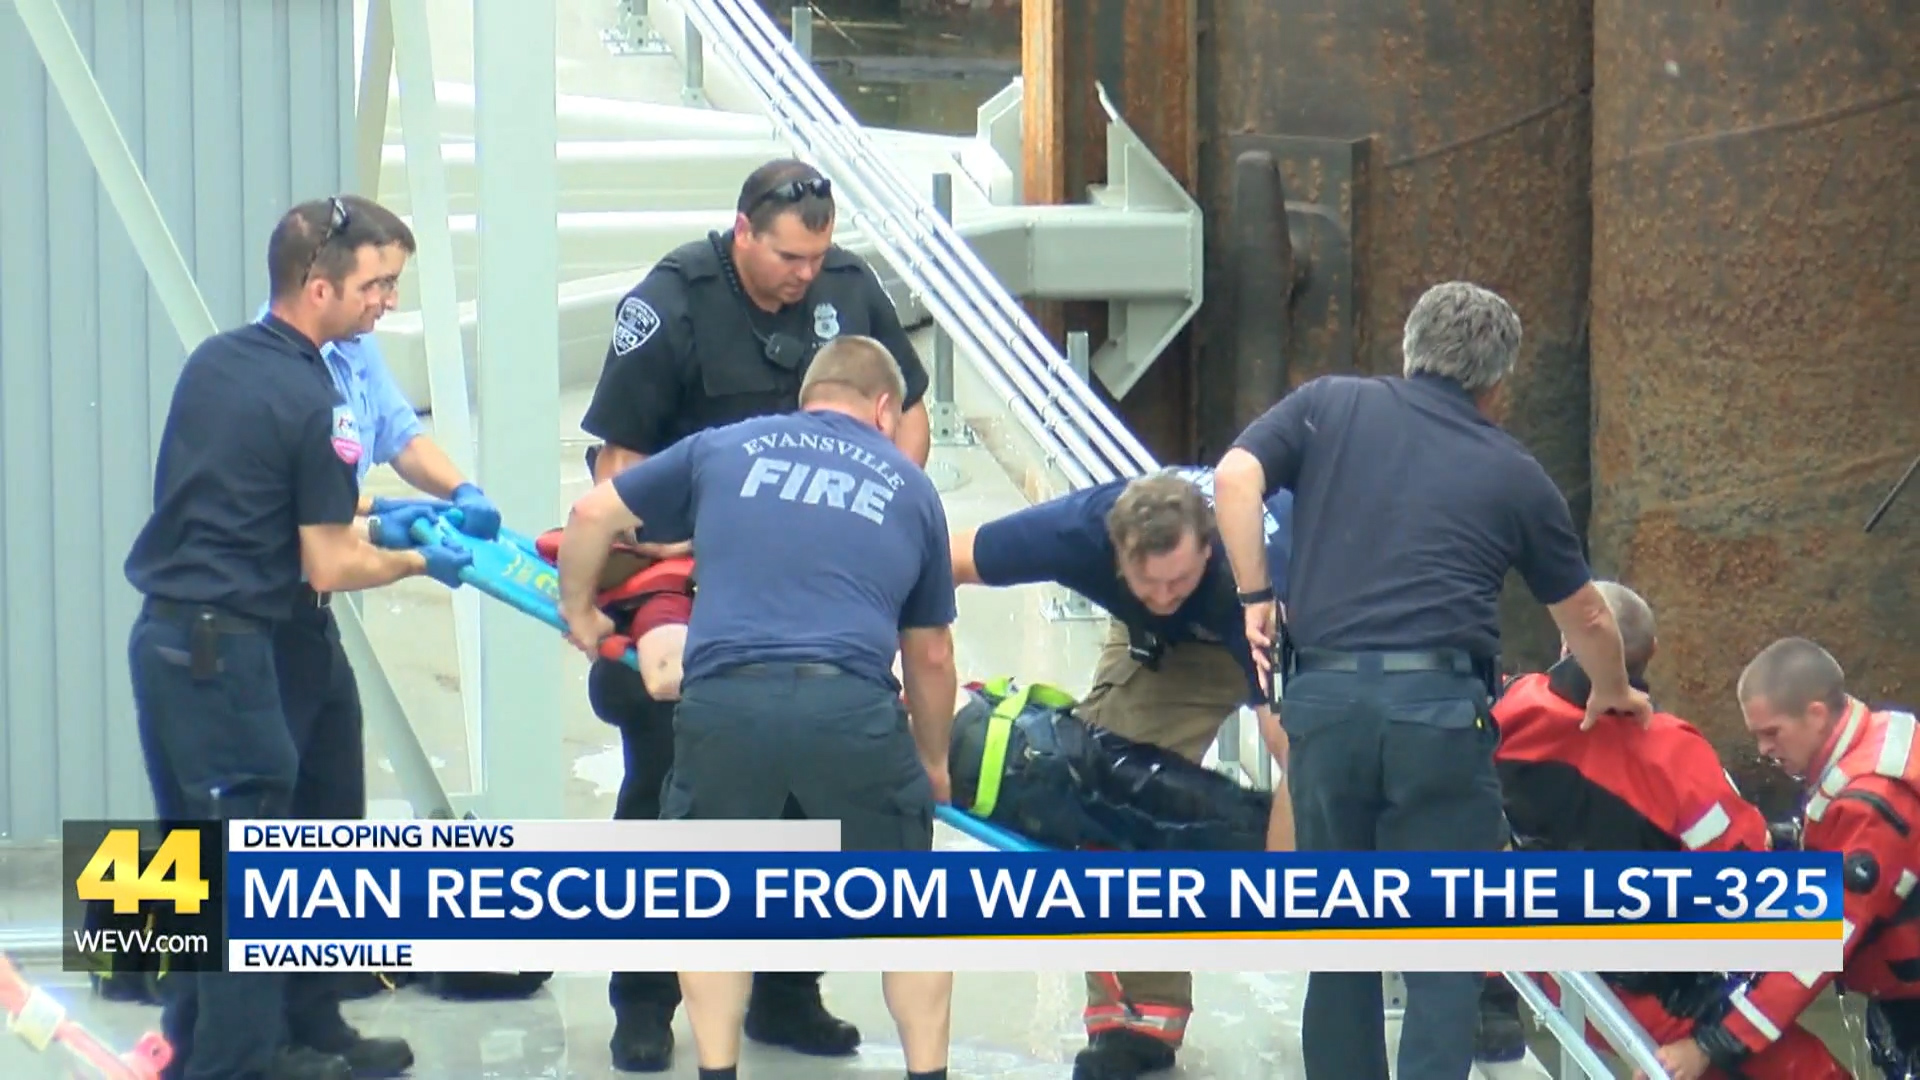 Image for Man Rescued from Water near LST 325